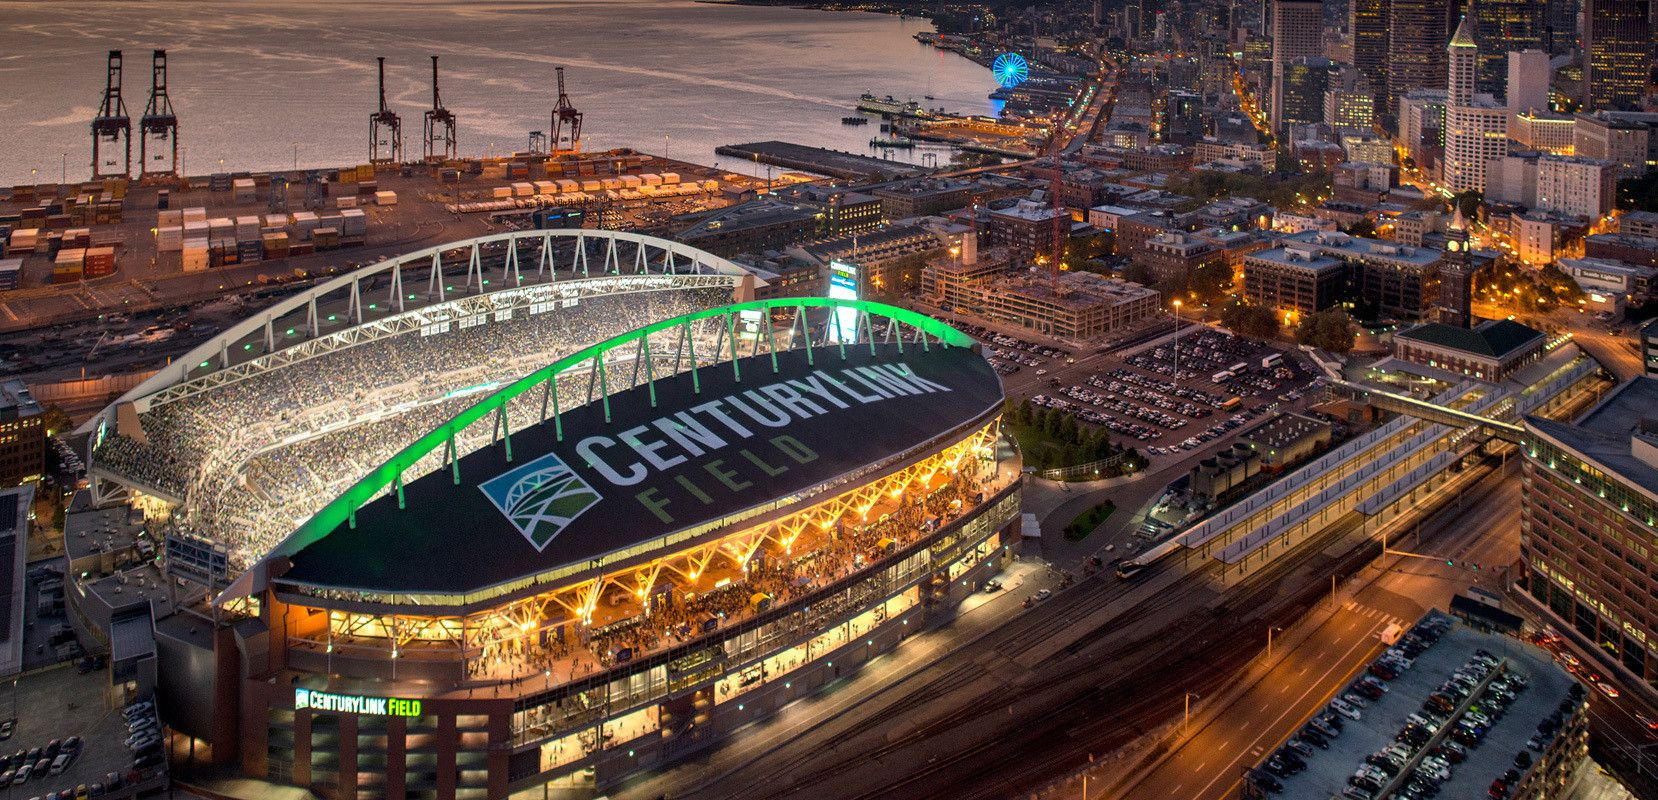 27 American sports venues that can't possibly disappoint in person | Seattle Seahawks CenturyLink Field